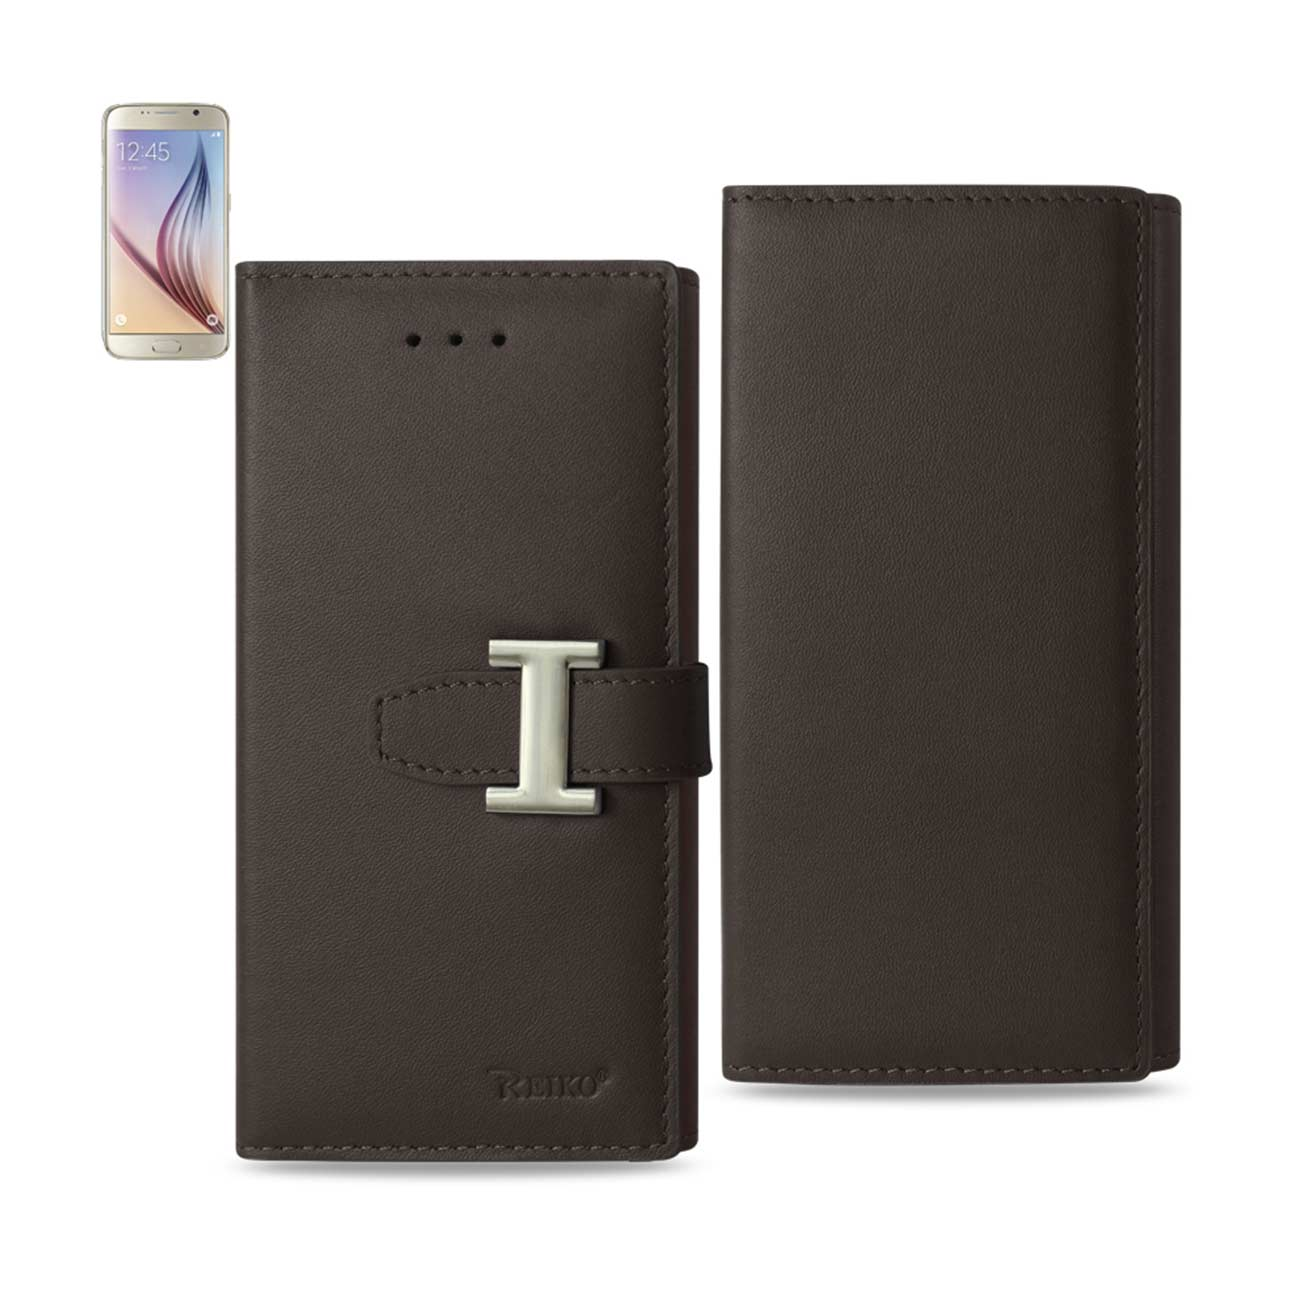 SAMSUNG GALAXY S6 PLUS GENUINE LEATHER RFID WALLET CASE IN UMBER